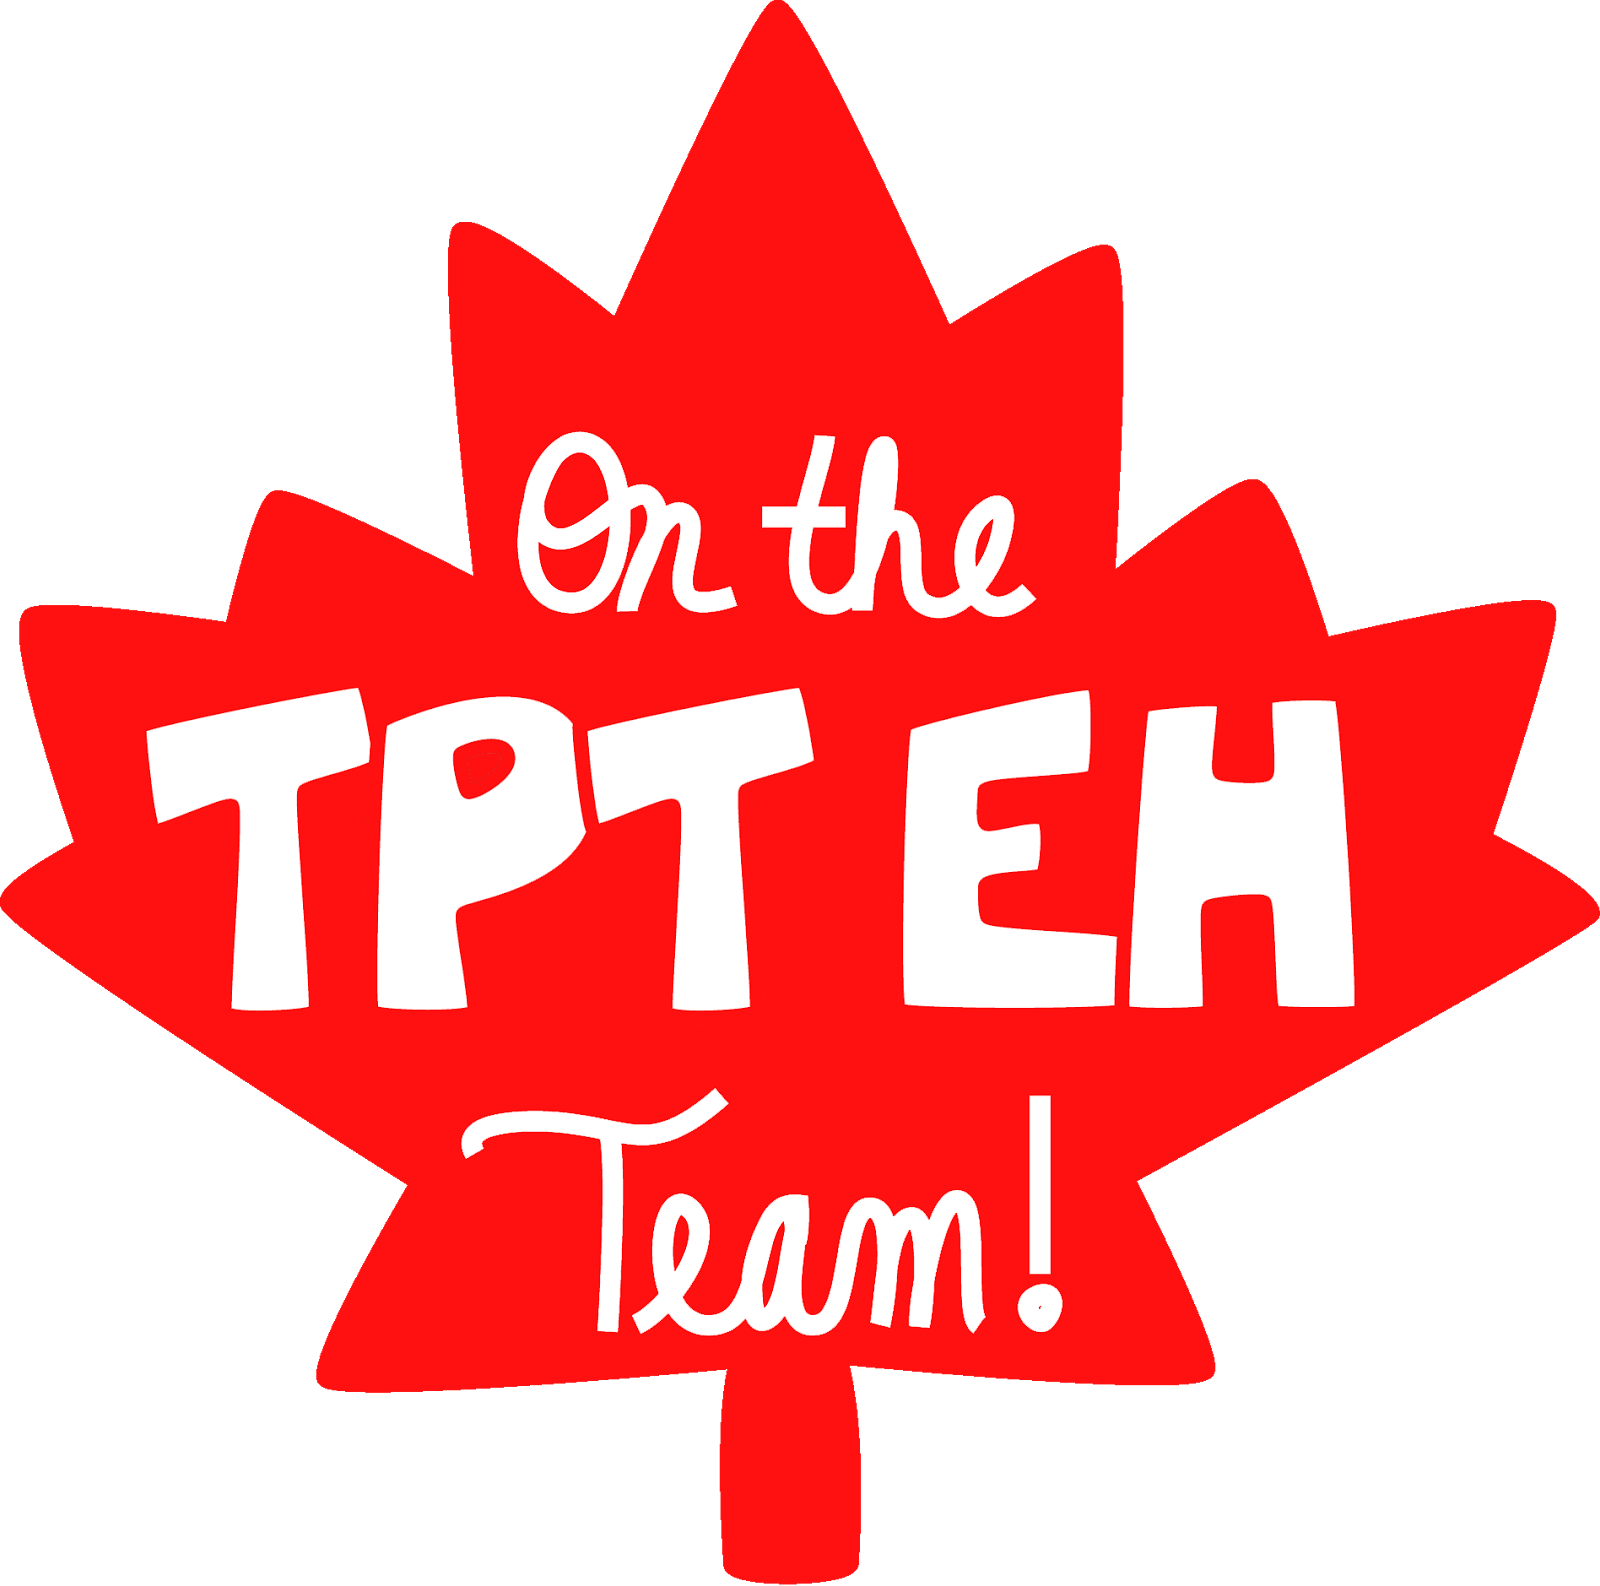 Meet Our TpT Eh! Team